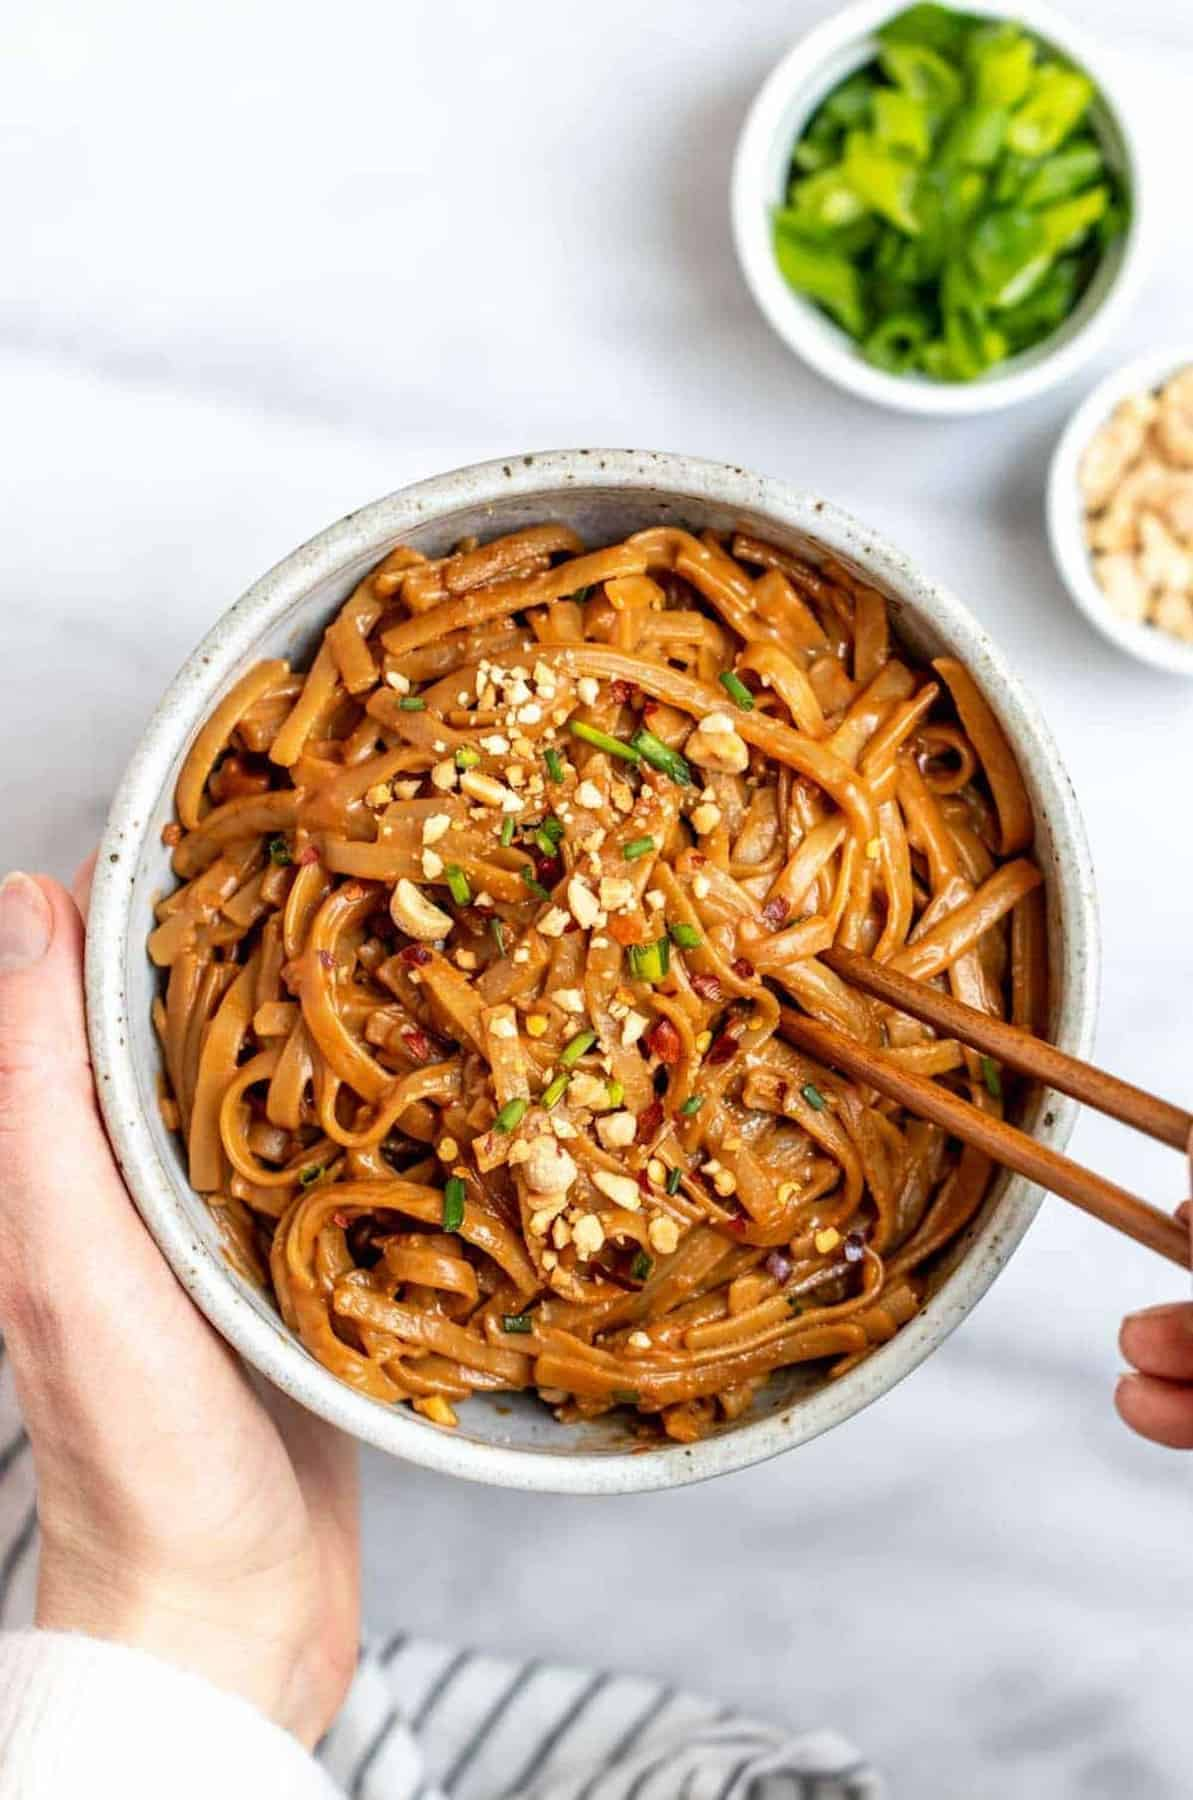 Hands holding a bowl with peanut butter noodles.